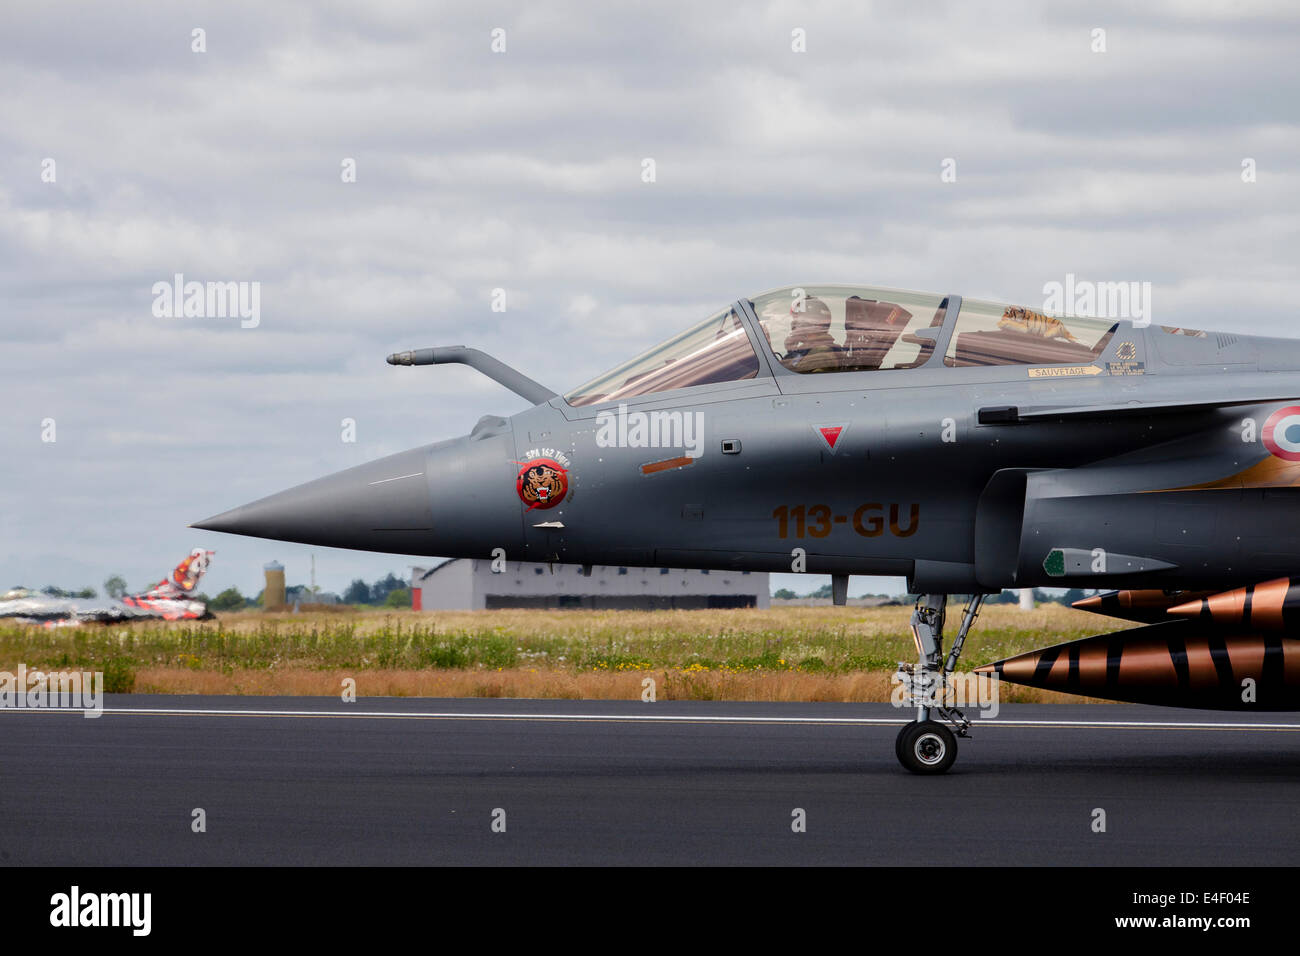 French Air Force Rafale jet during the NATO Tiger Meet 2014, Jagel, Germany. - Stock Image